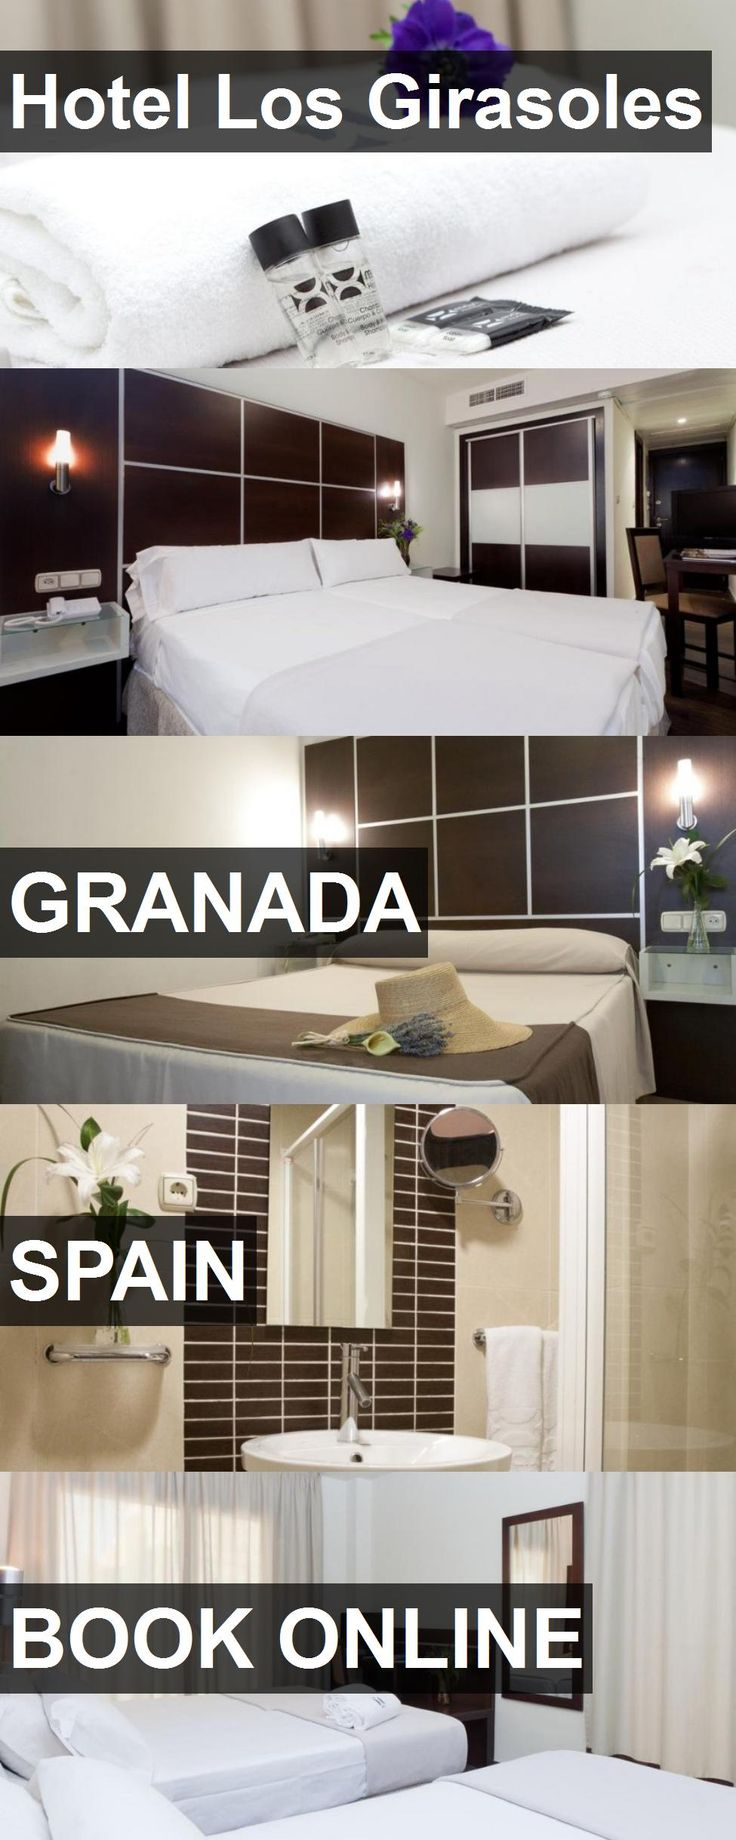 Hotel Los Girasoles in Granada, Spain. For more information, photos, reviews and best prices please follow the link. #Spain #Granada #travel #vacation #hotel